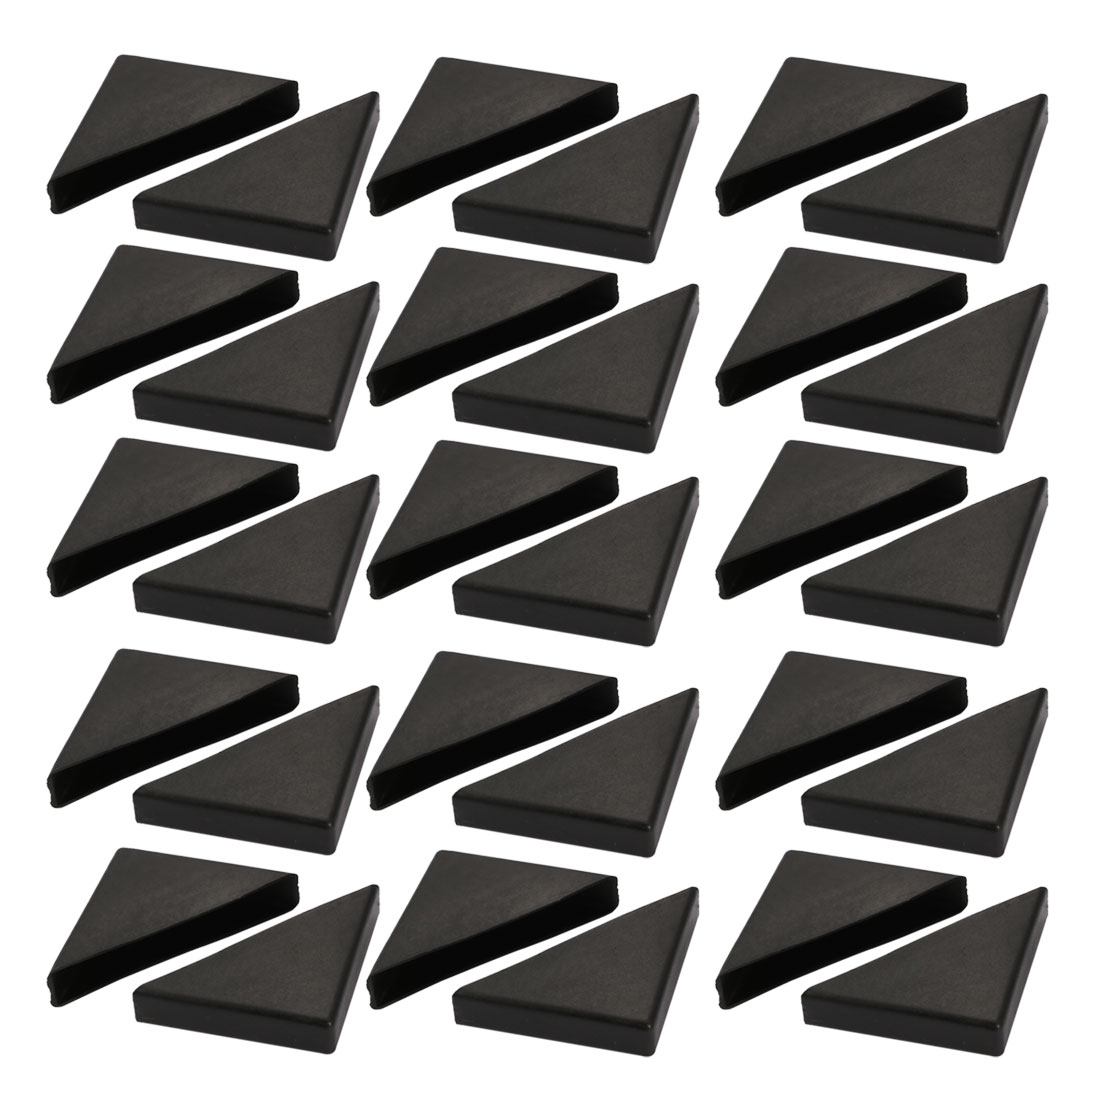 30pcs 55mmx55mm Plastic Table Desk Corner Guard Protector Fit for 12mm Thickness